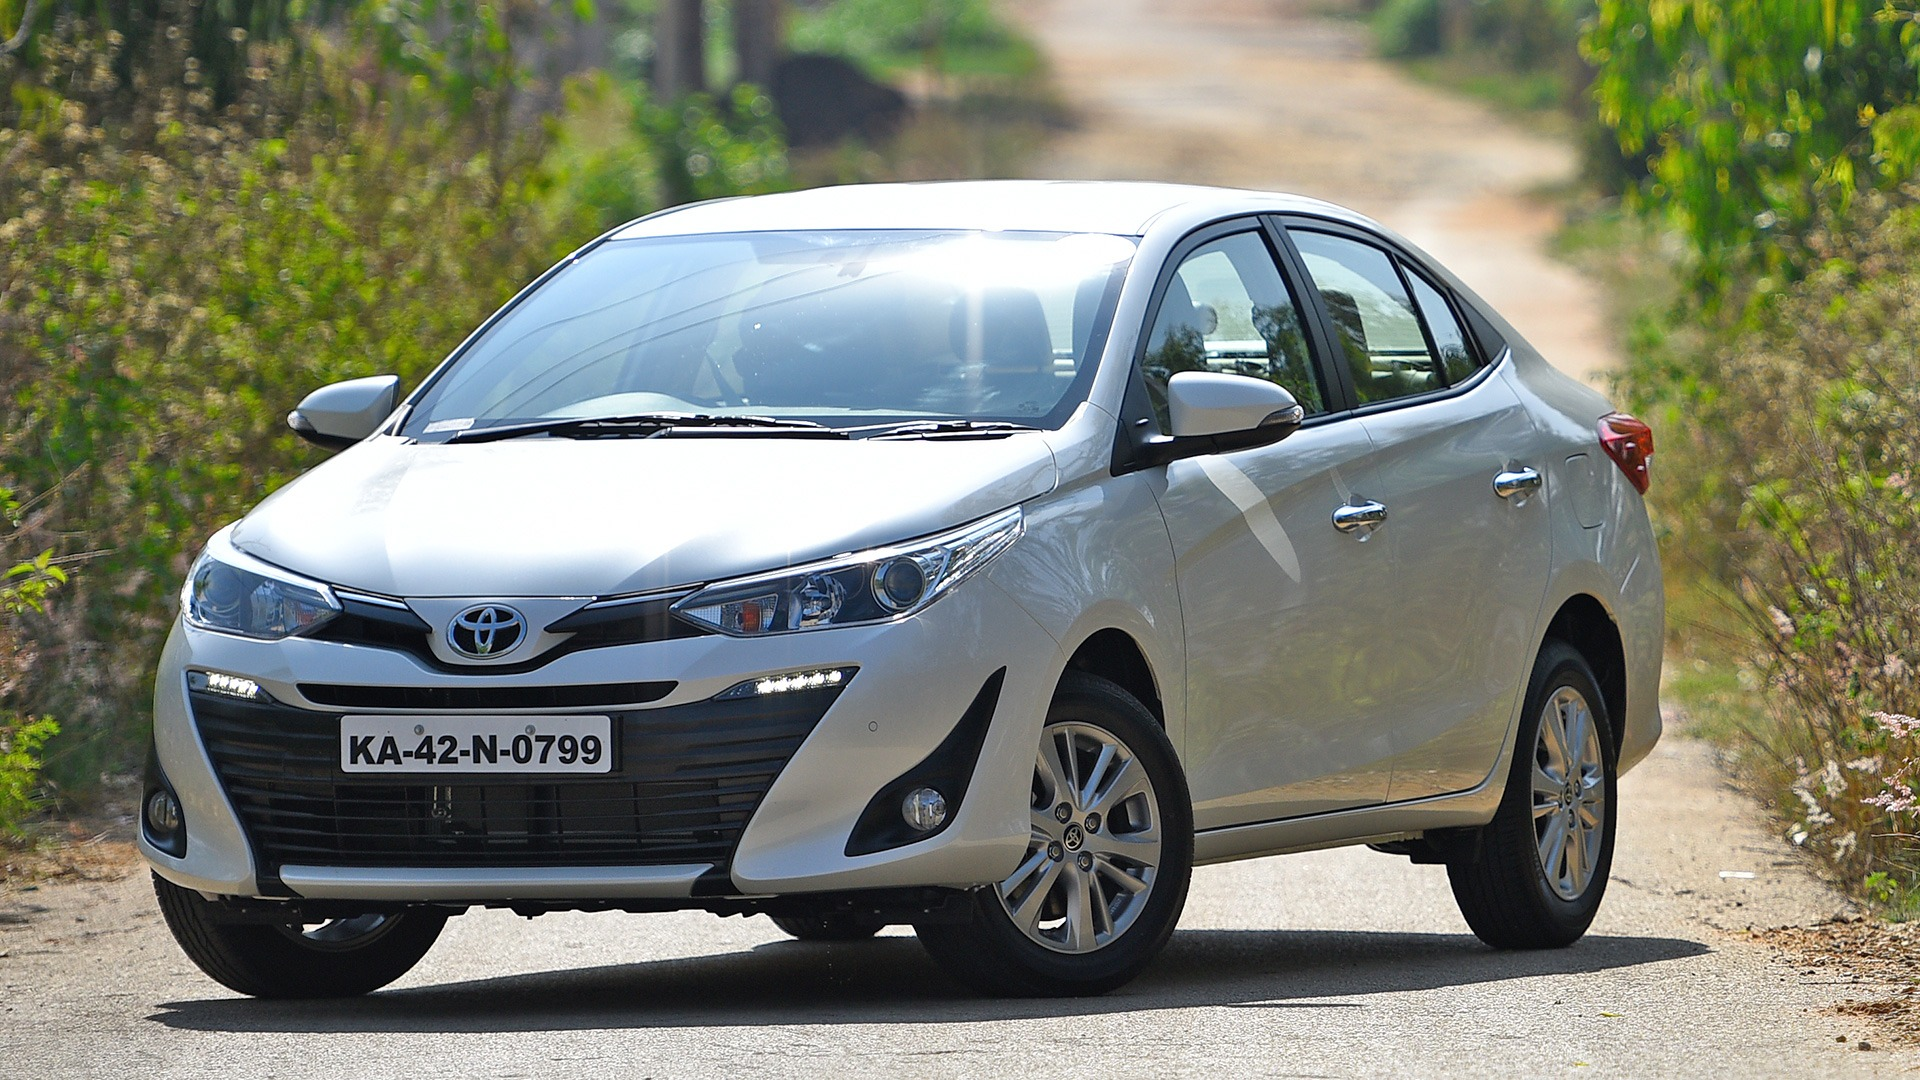 2018 Toyota Yaris Prices Announced in India 1